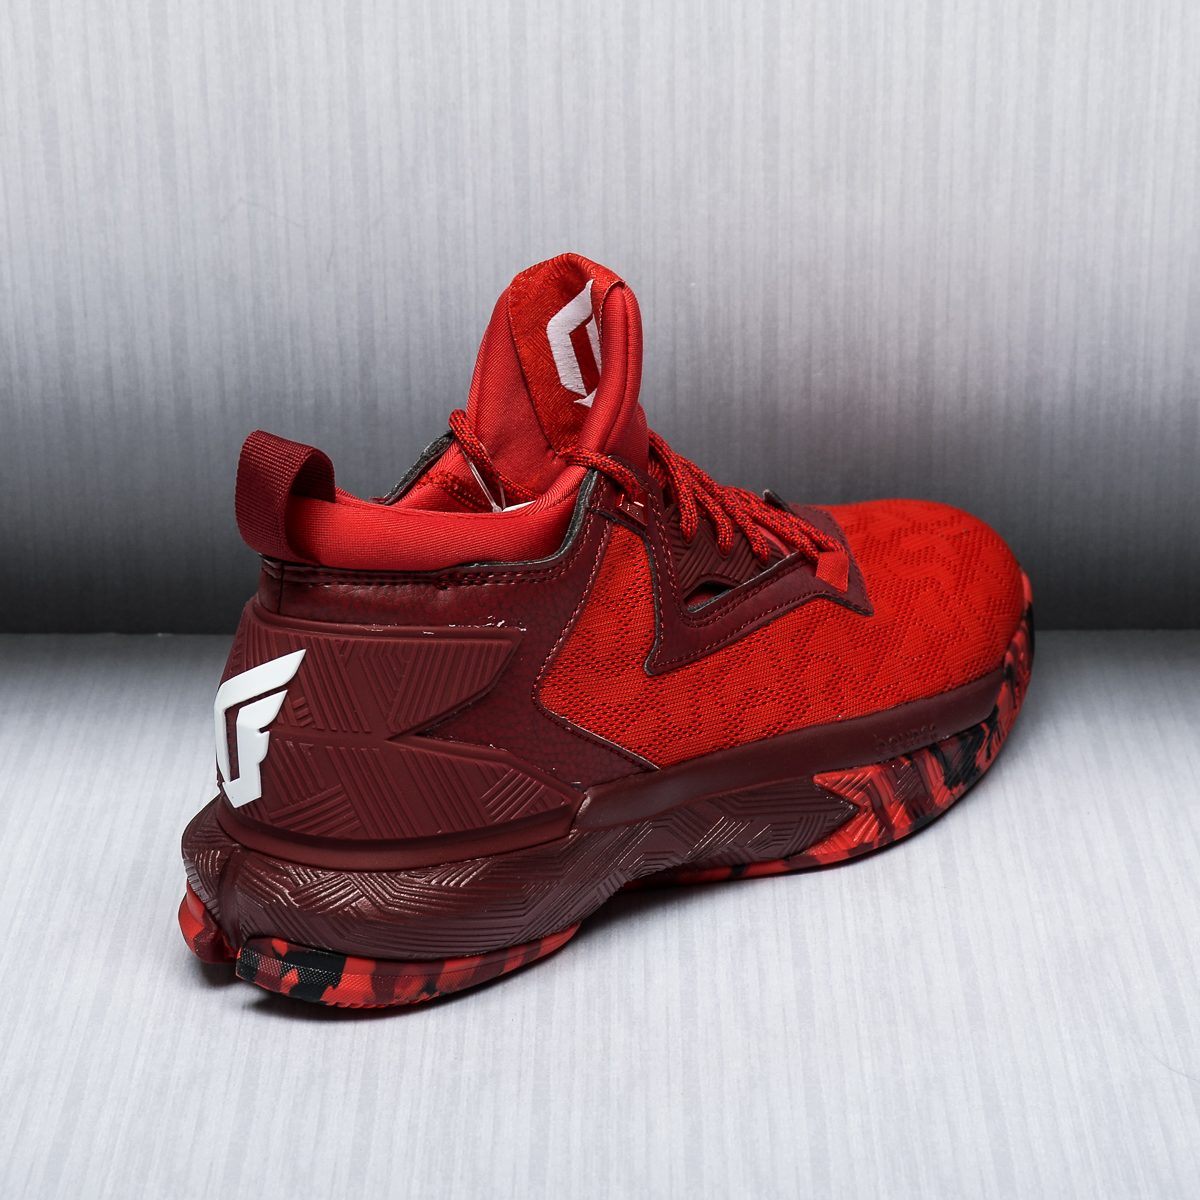 Red Basketball Shoes Adidas